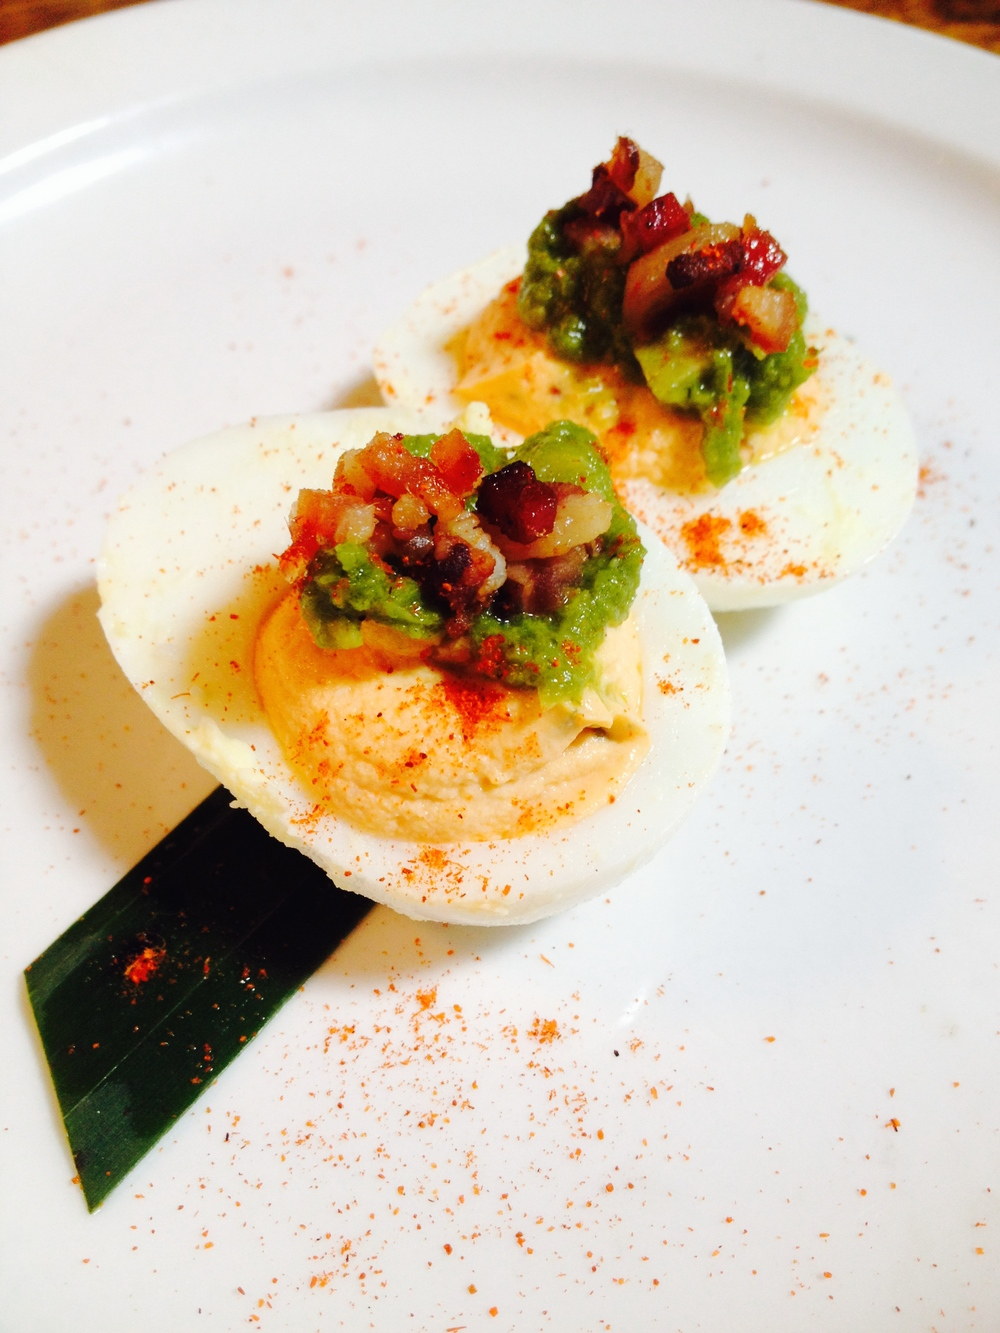 Green Eggs and Ham - spicy deviled eggs, green chile salsa, bacon bits